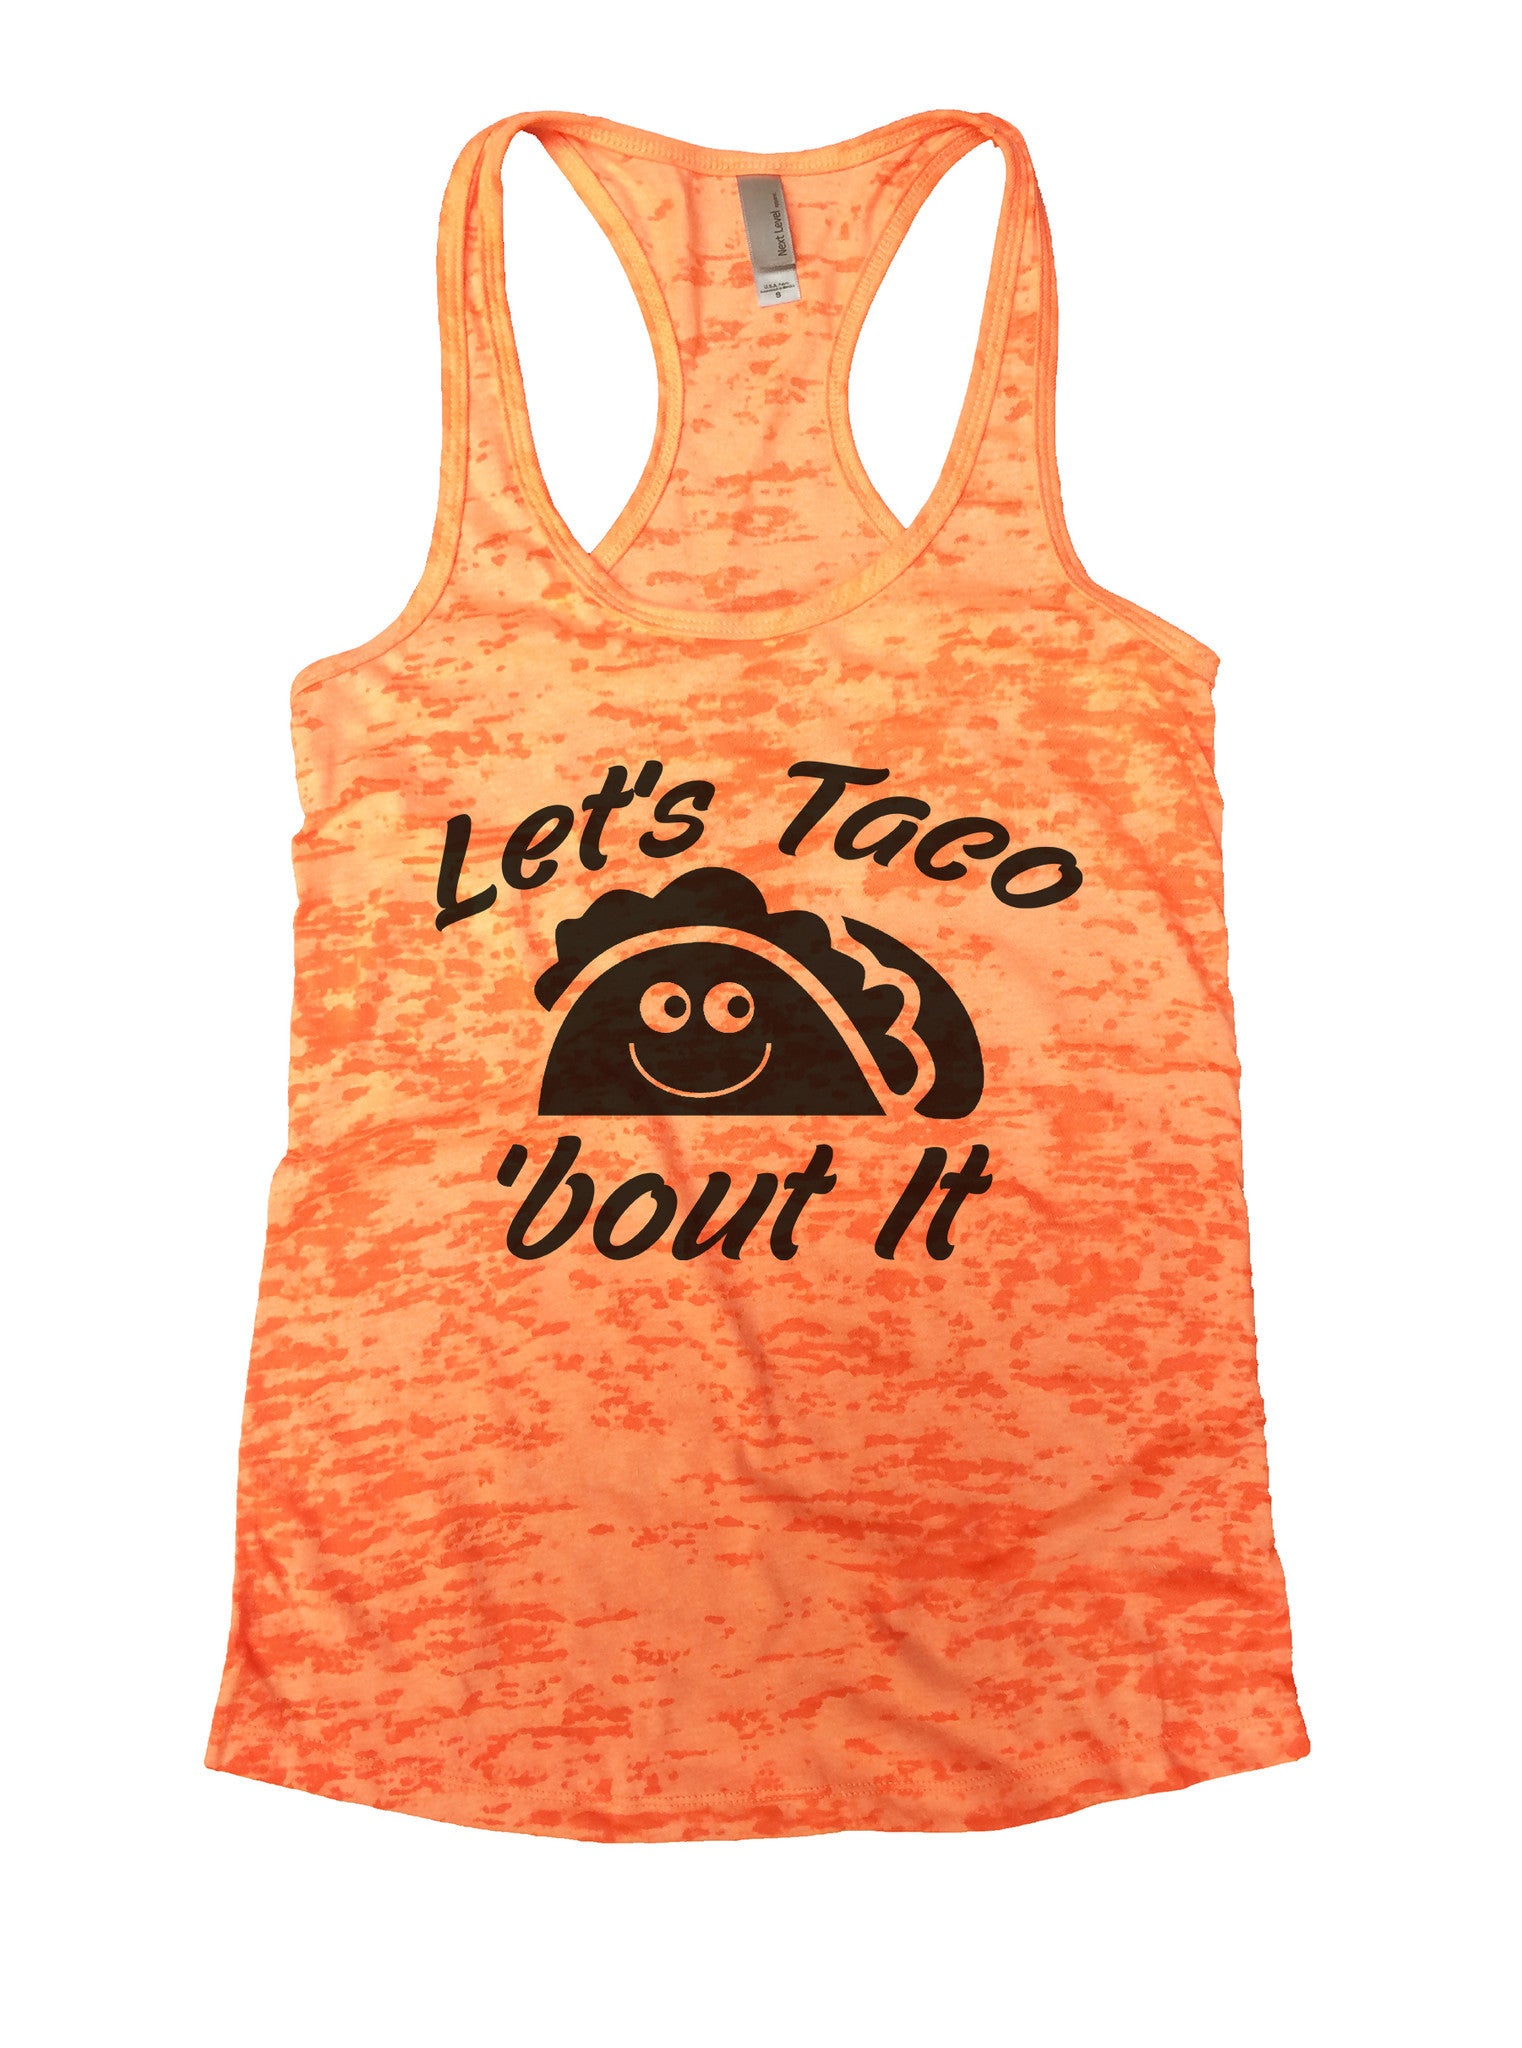 Let's Taco 'Bout It Burnout Tank Top By BurnoutTankTops.com - B860 - Funny Shirts Tank Tops Burnouts and Triblends  - 3